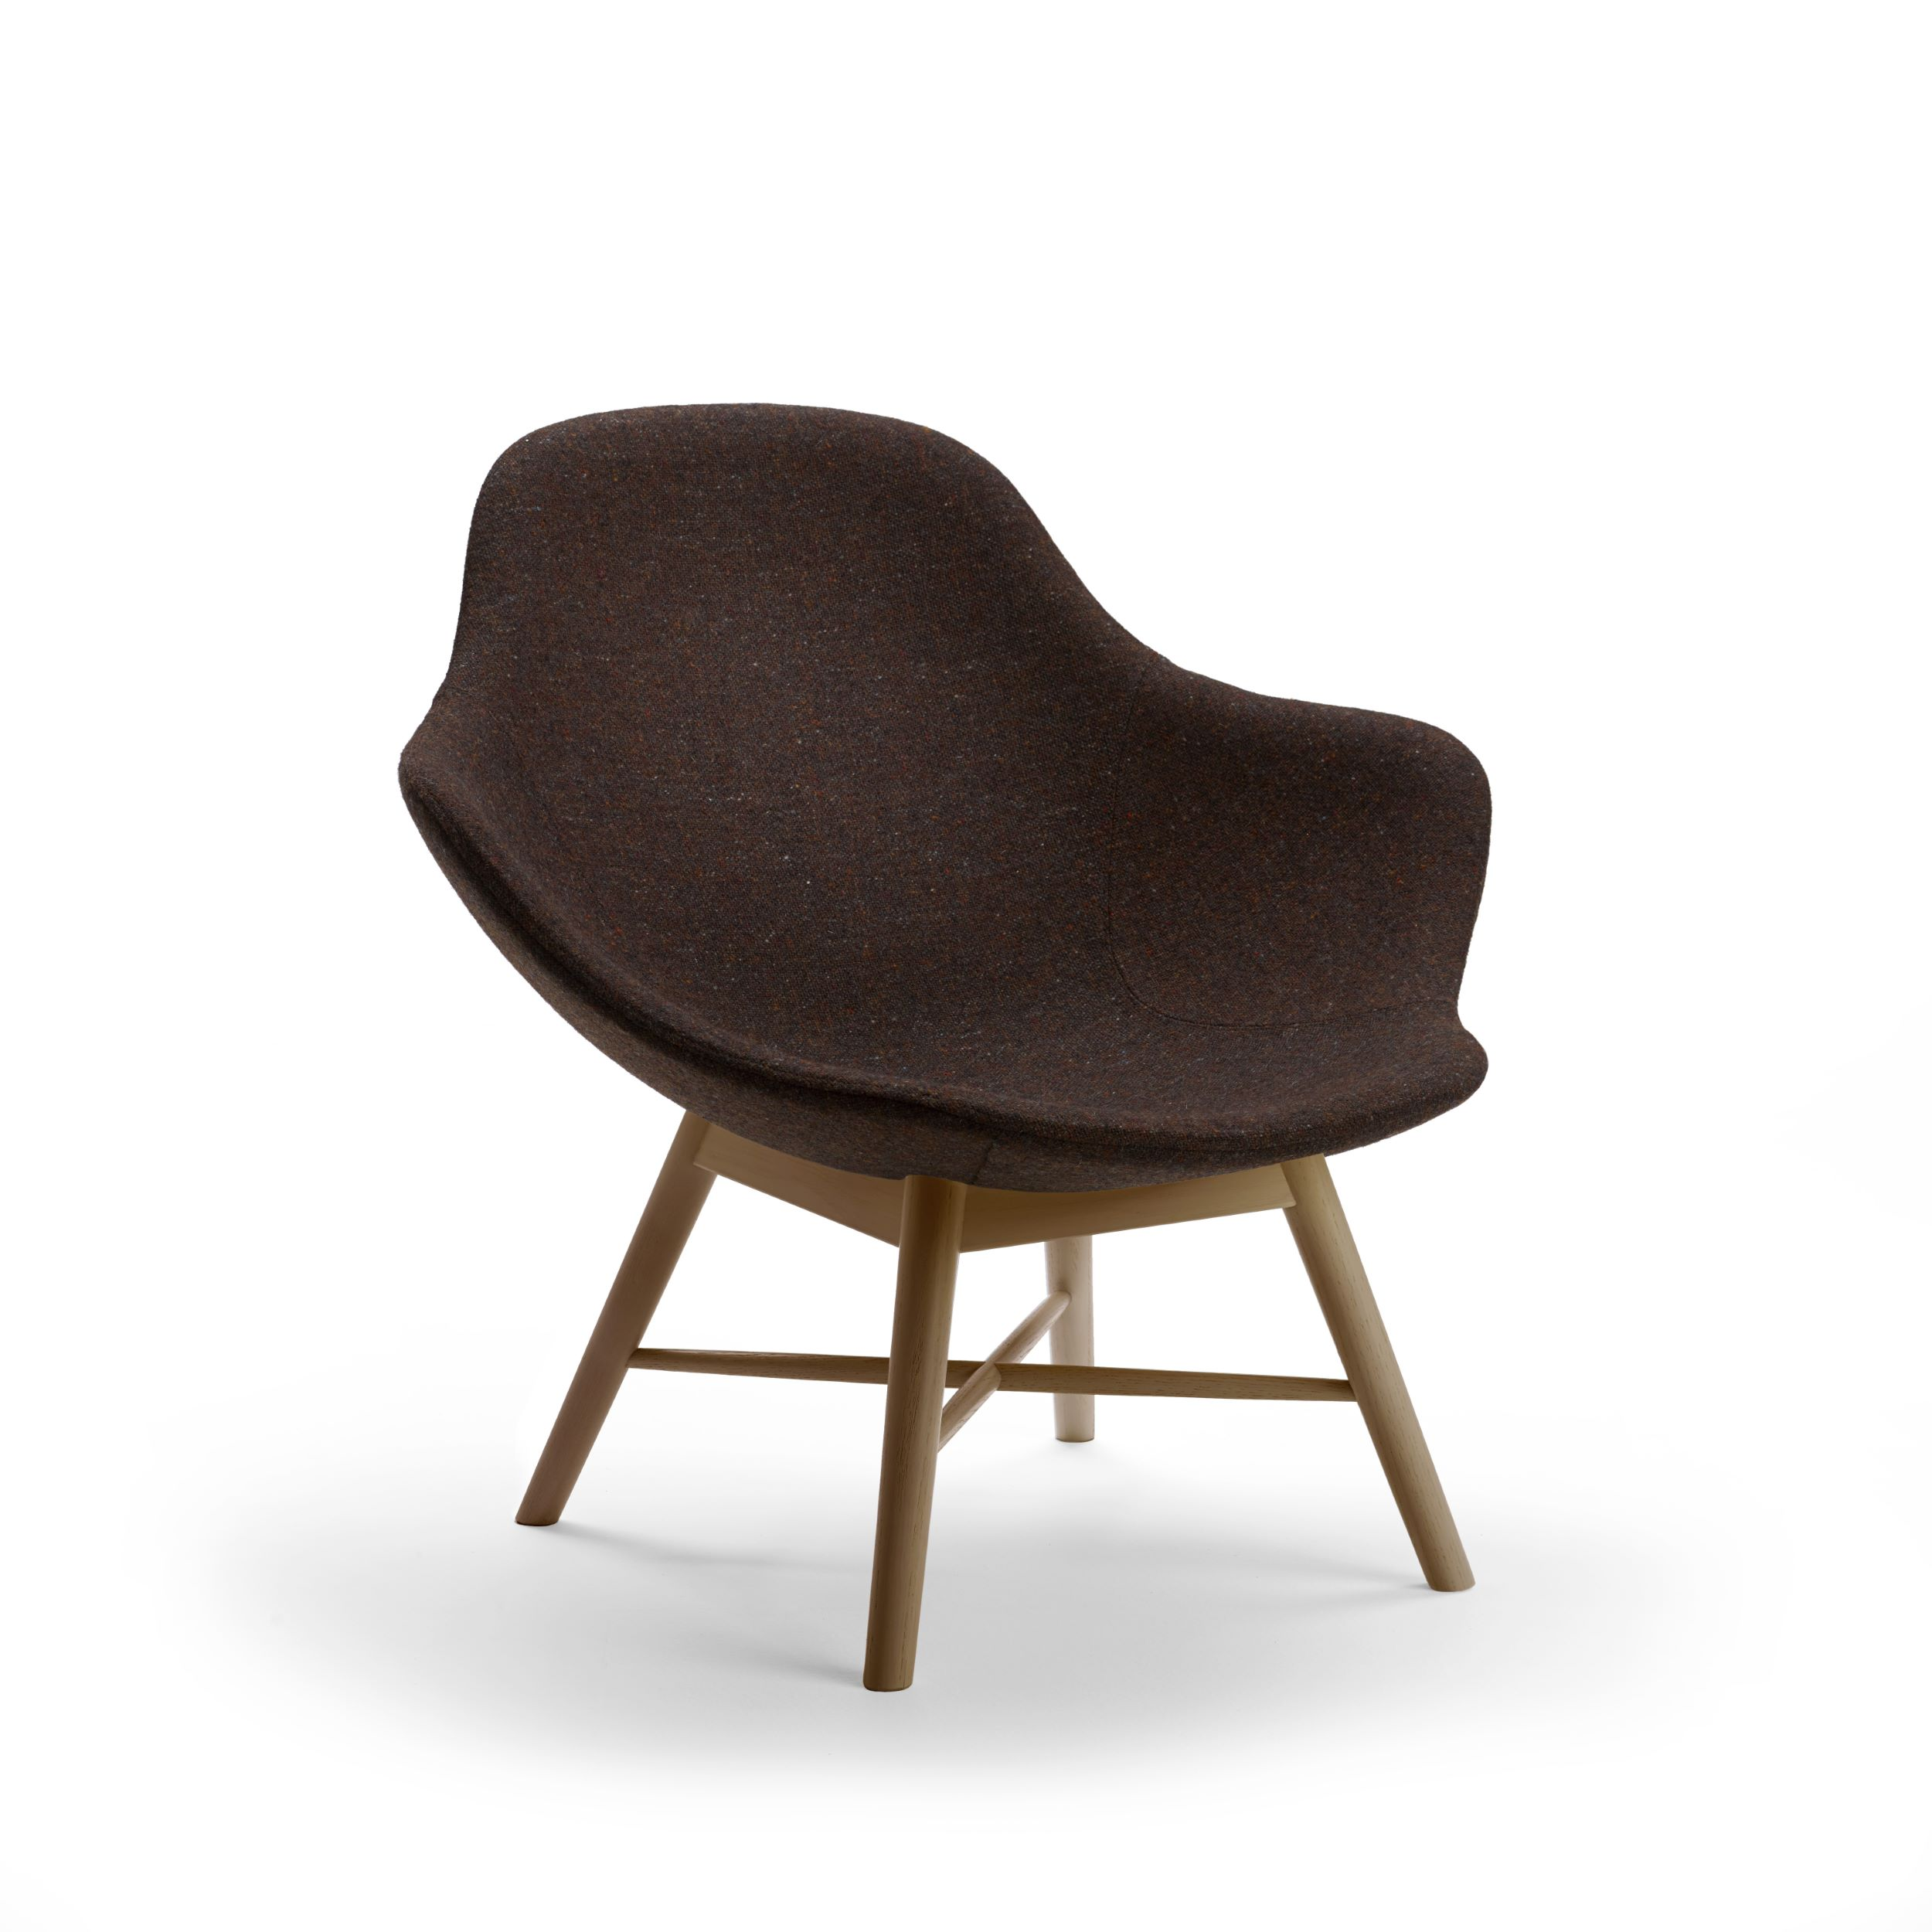 chairs images bean bag chair amazon easy modern lounge seating for meeting spaces offecct palma wood